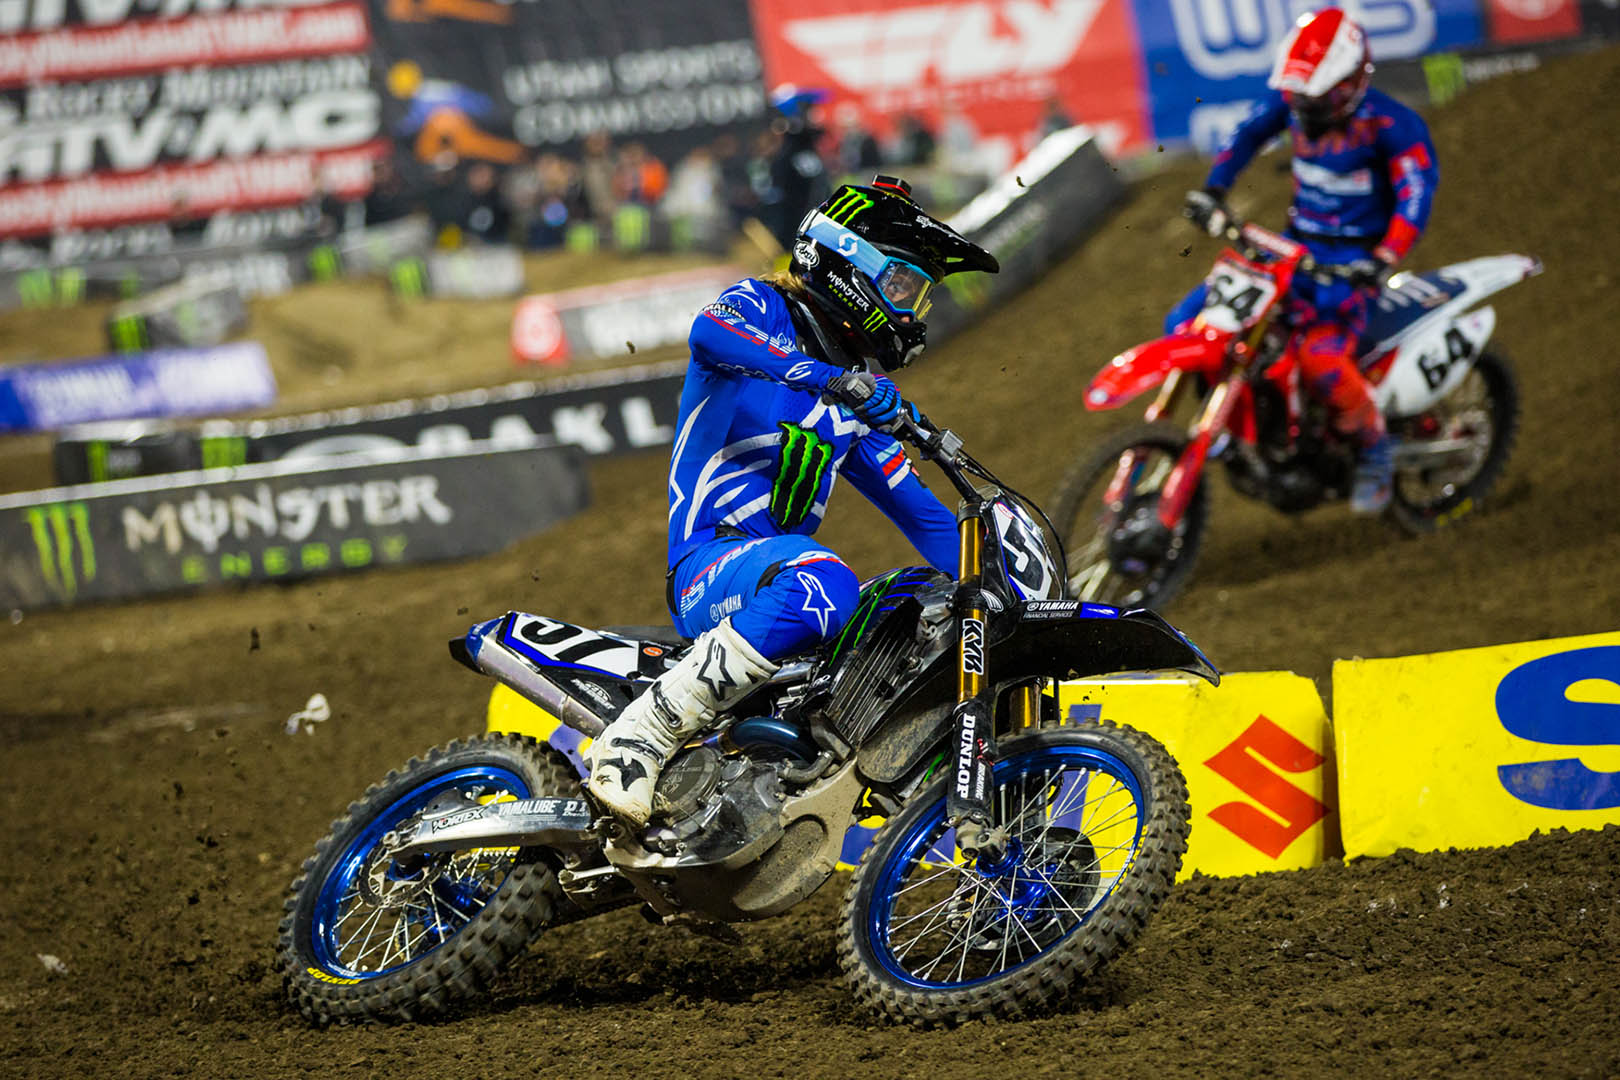 2020 Anaheim 1 Supercross Results - Justin Barcia and Vince Friese